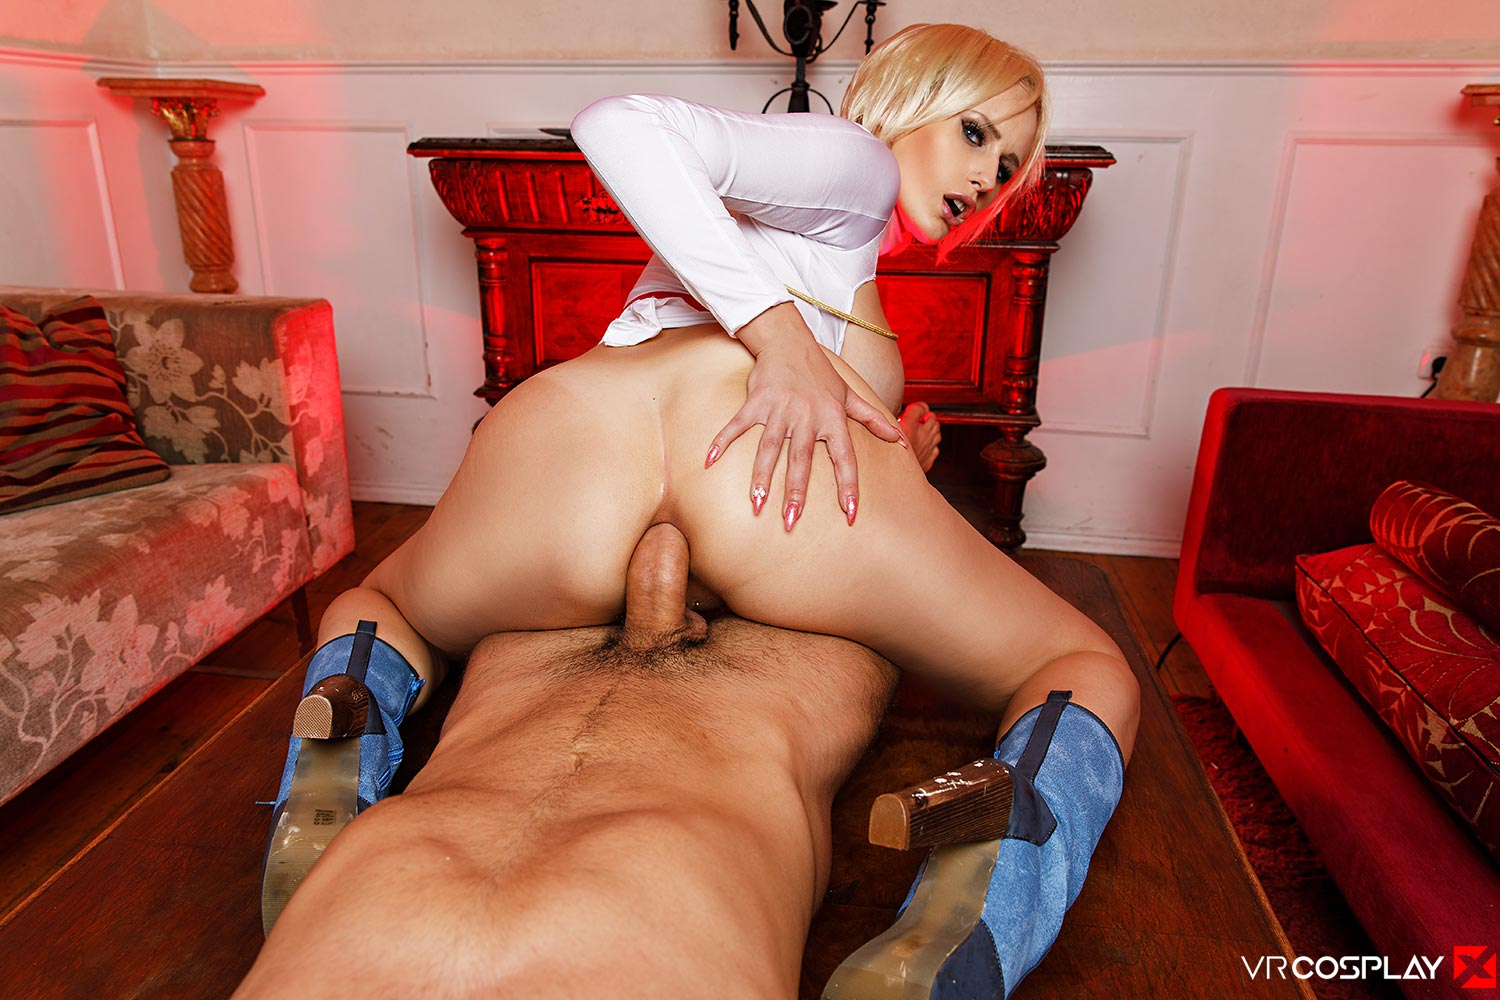 Girl gets over power girl anal